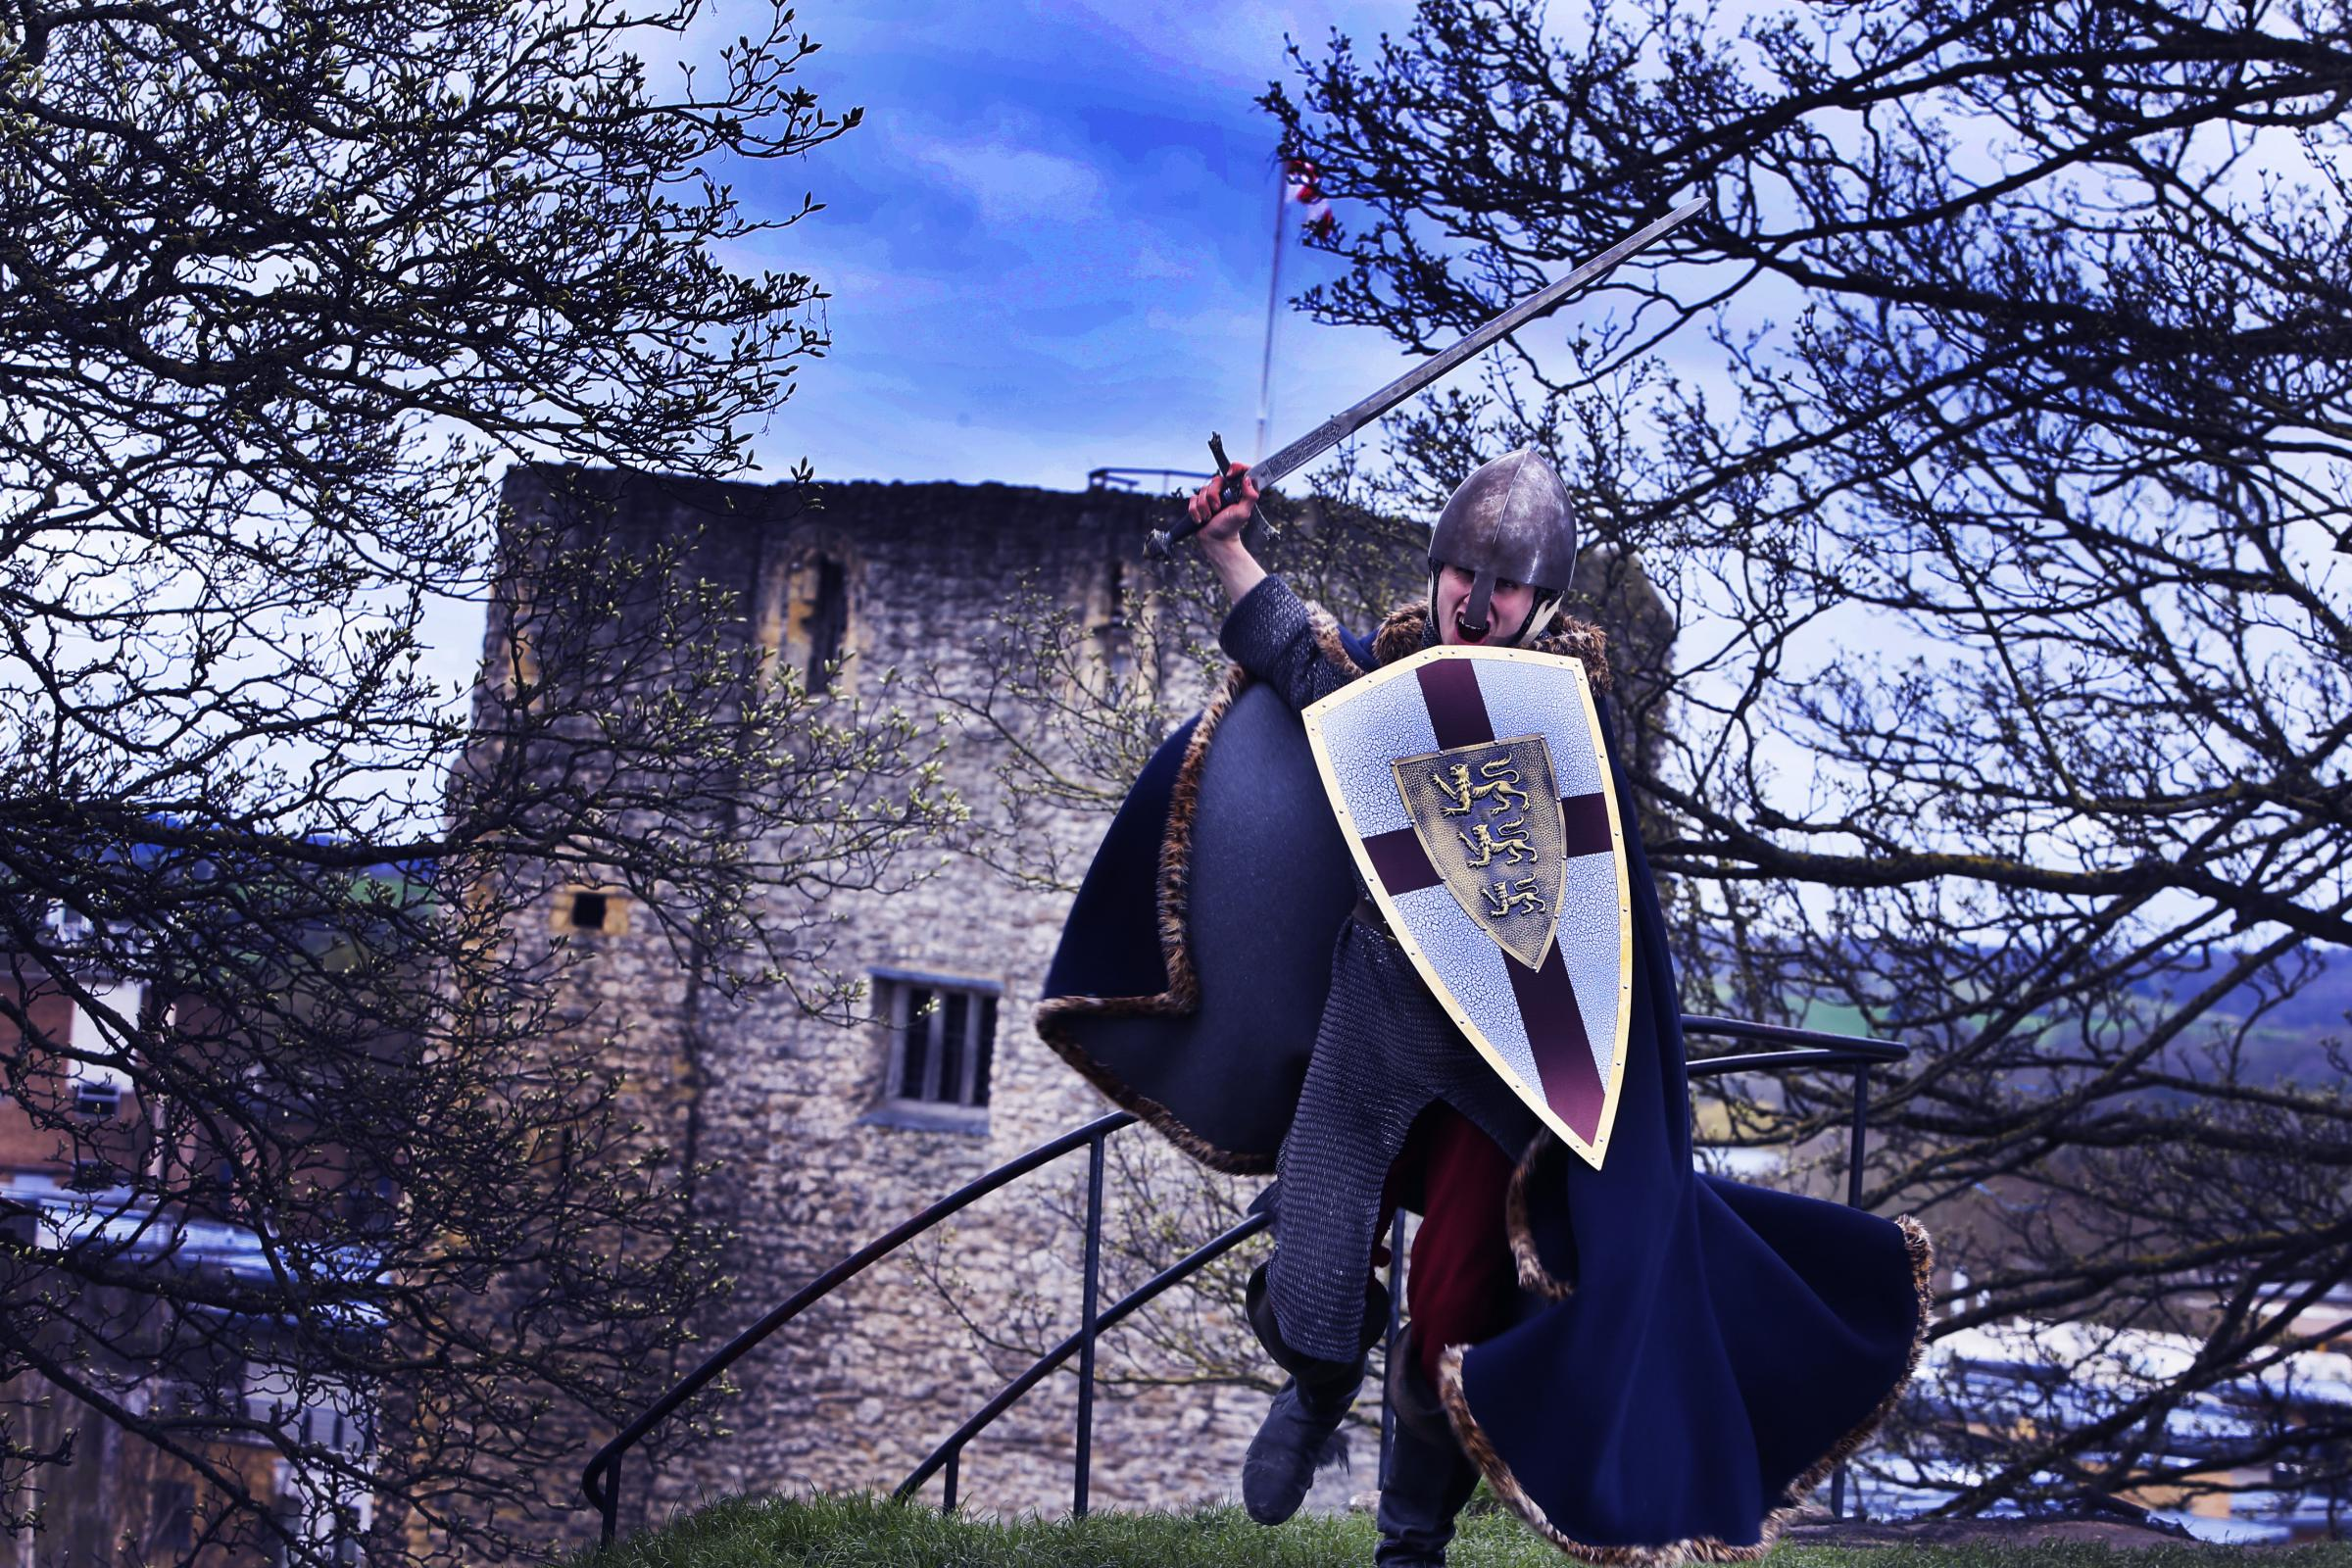 Tour Guide Robin Dando pictured in front of the St George tower at the Oxford Castle & Prison (Picture by Ed Nix)